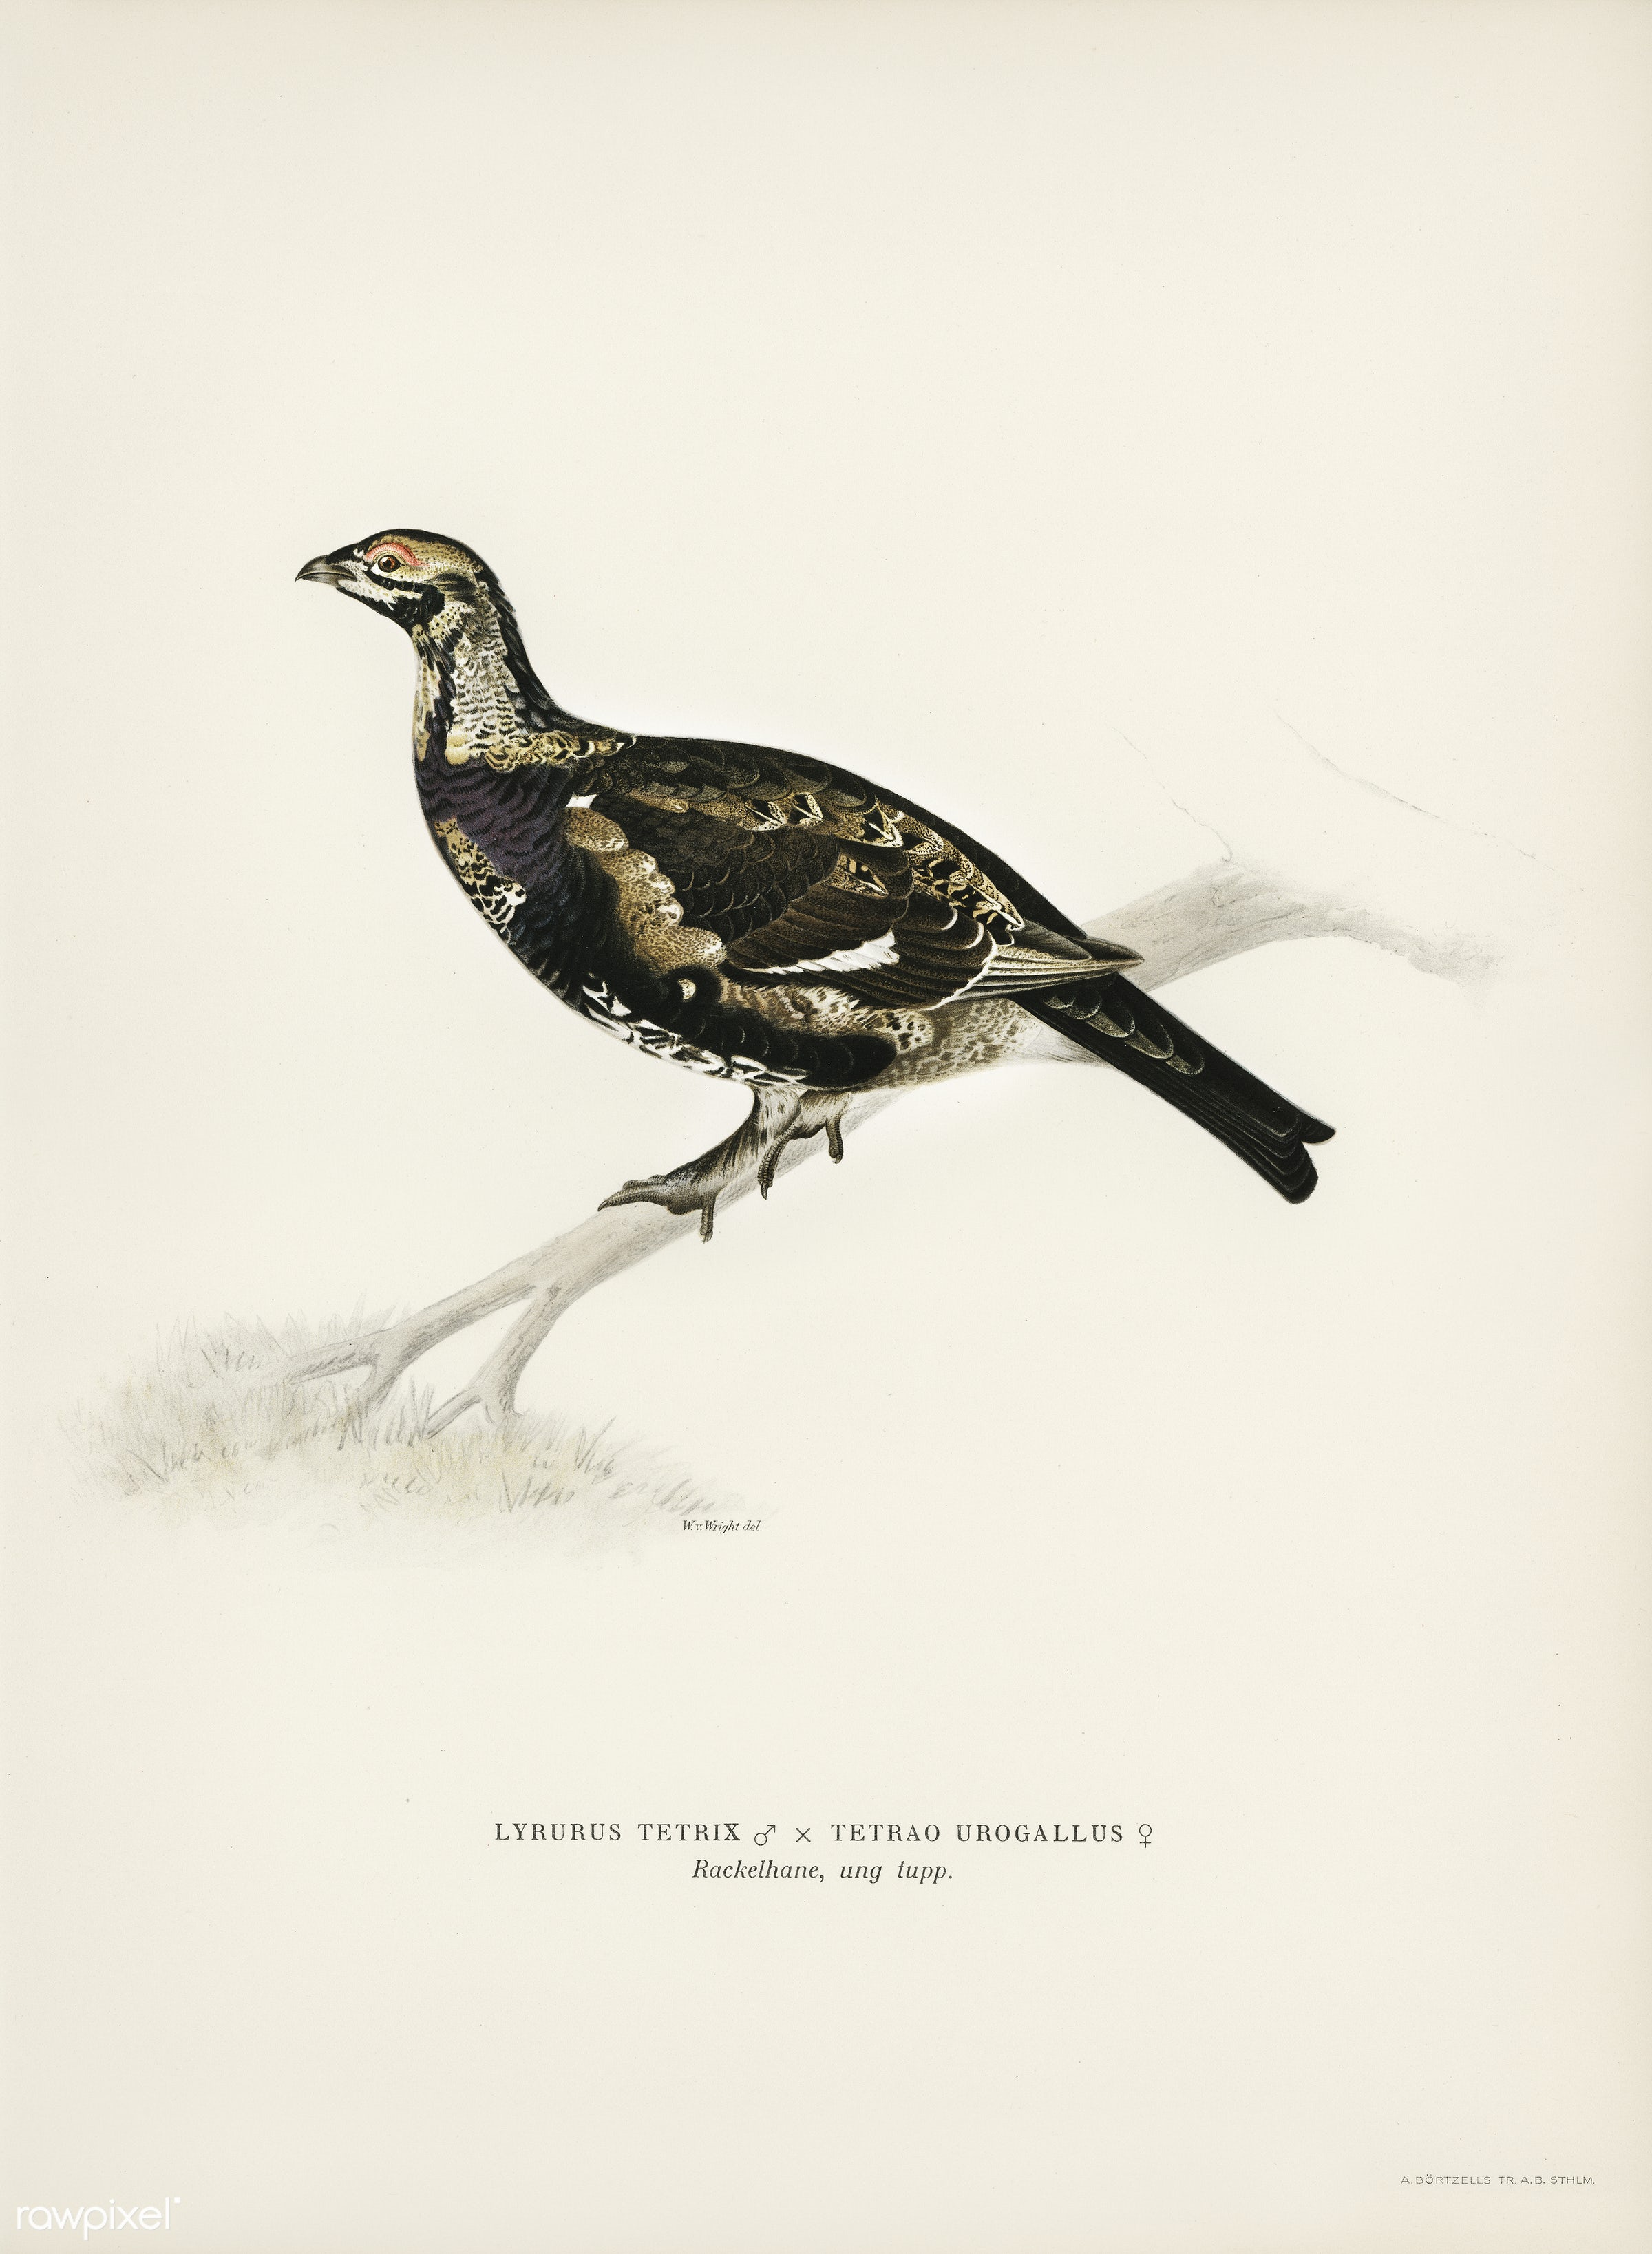 Hybrid between Black grouse and Willow ptarmigan (Yrurus tetrix x lagopus lagopus) illustrated by the von Wright brothers....